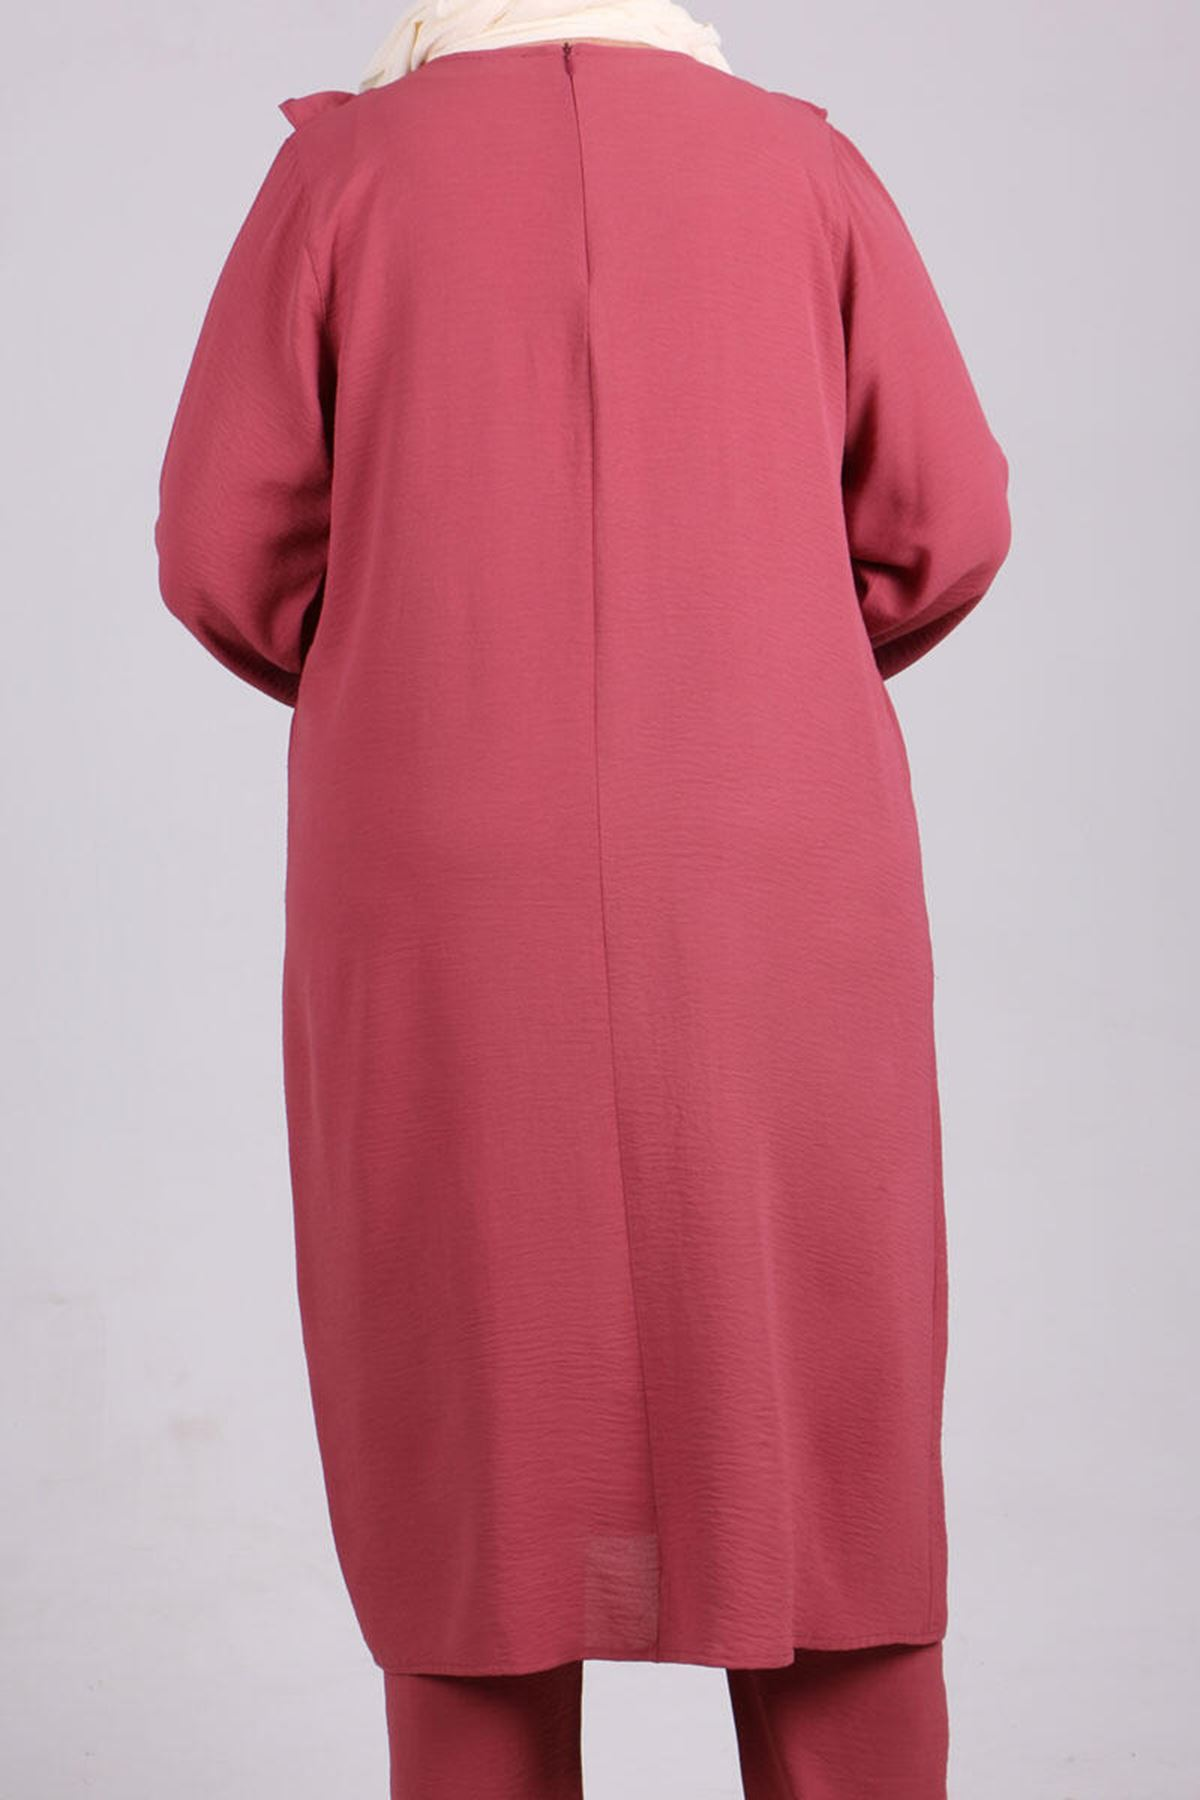 7674 Plus Size Two Piece Set with Tunic and Pants- Dusty Rose